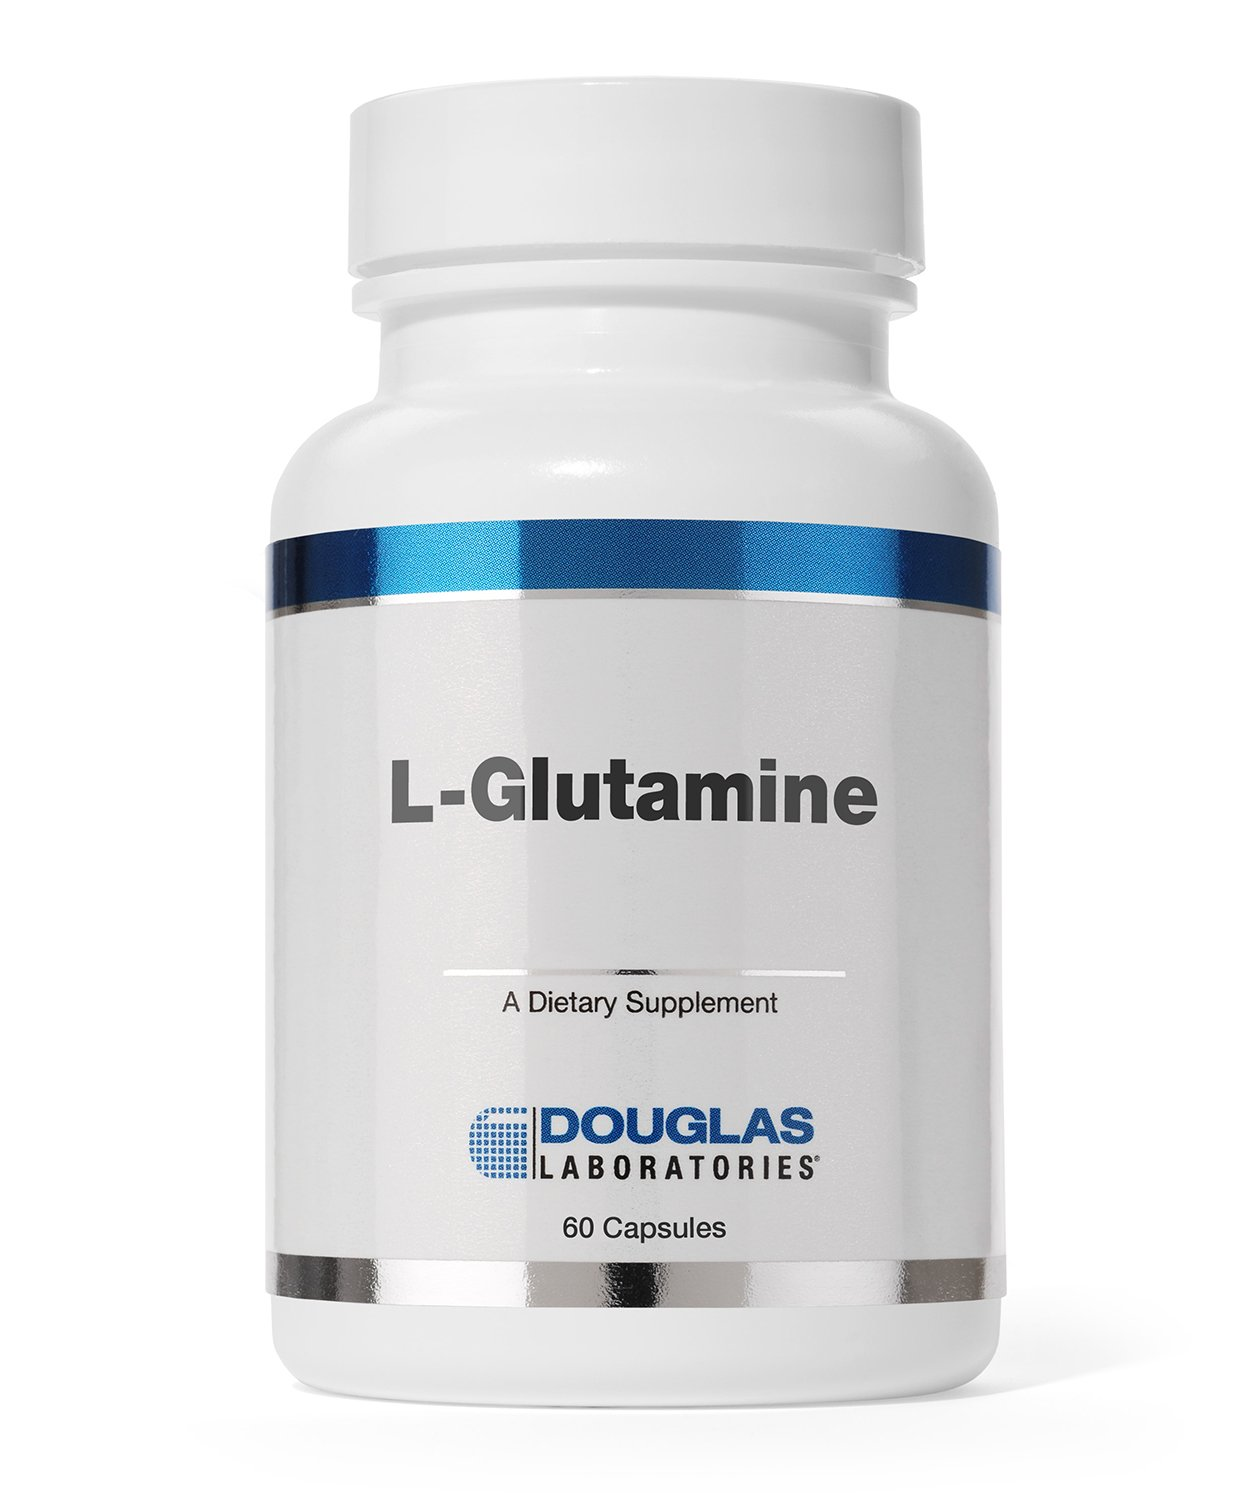 Douglas Laboratories - L-Glutamine - Supports Structure and Function of The Gastrointestinal (GI) Tract and Immune System* - 60 Capsules by Douglas Laboratories